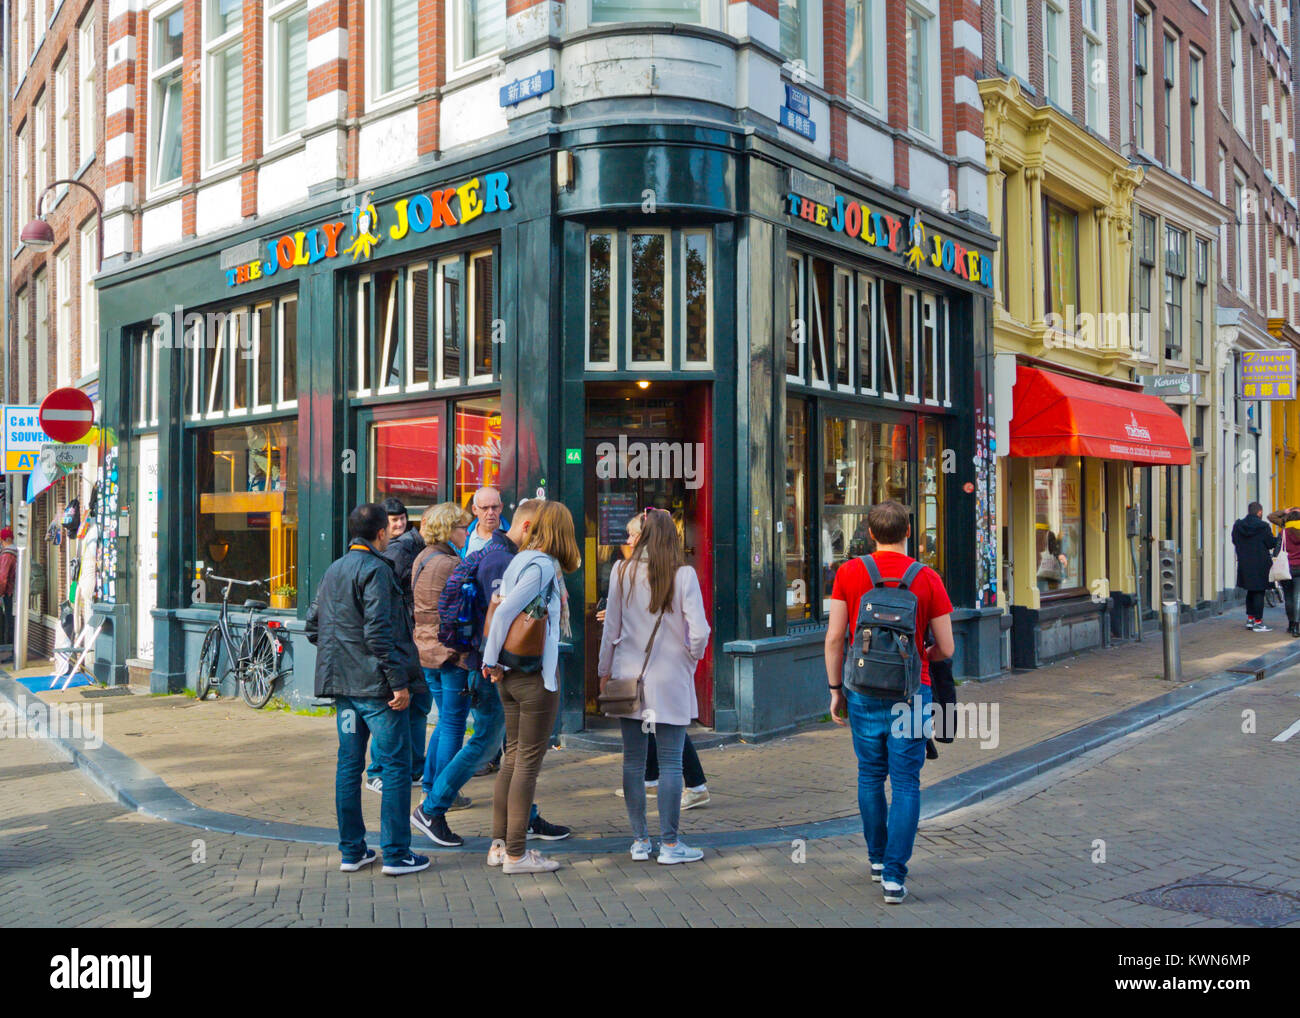 Jolly Joker coffeeshop, Nieuwmarkt, old town, Amsterdam, The Netherlands - Stock Image